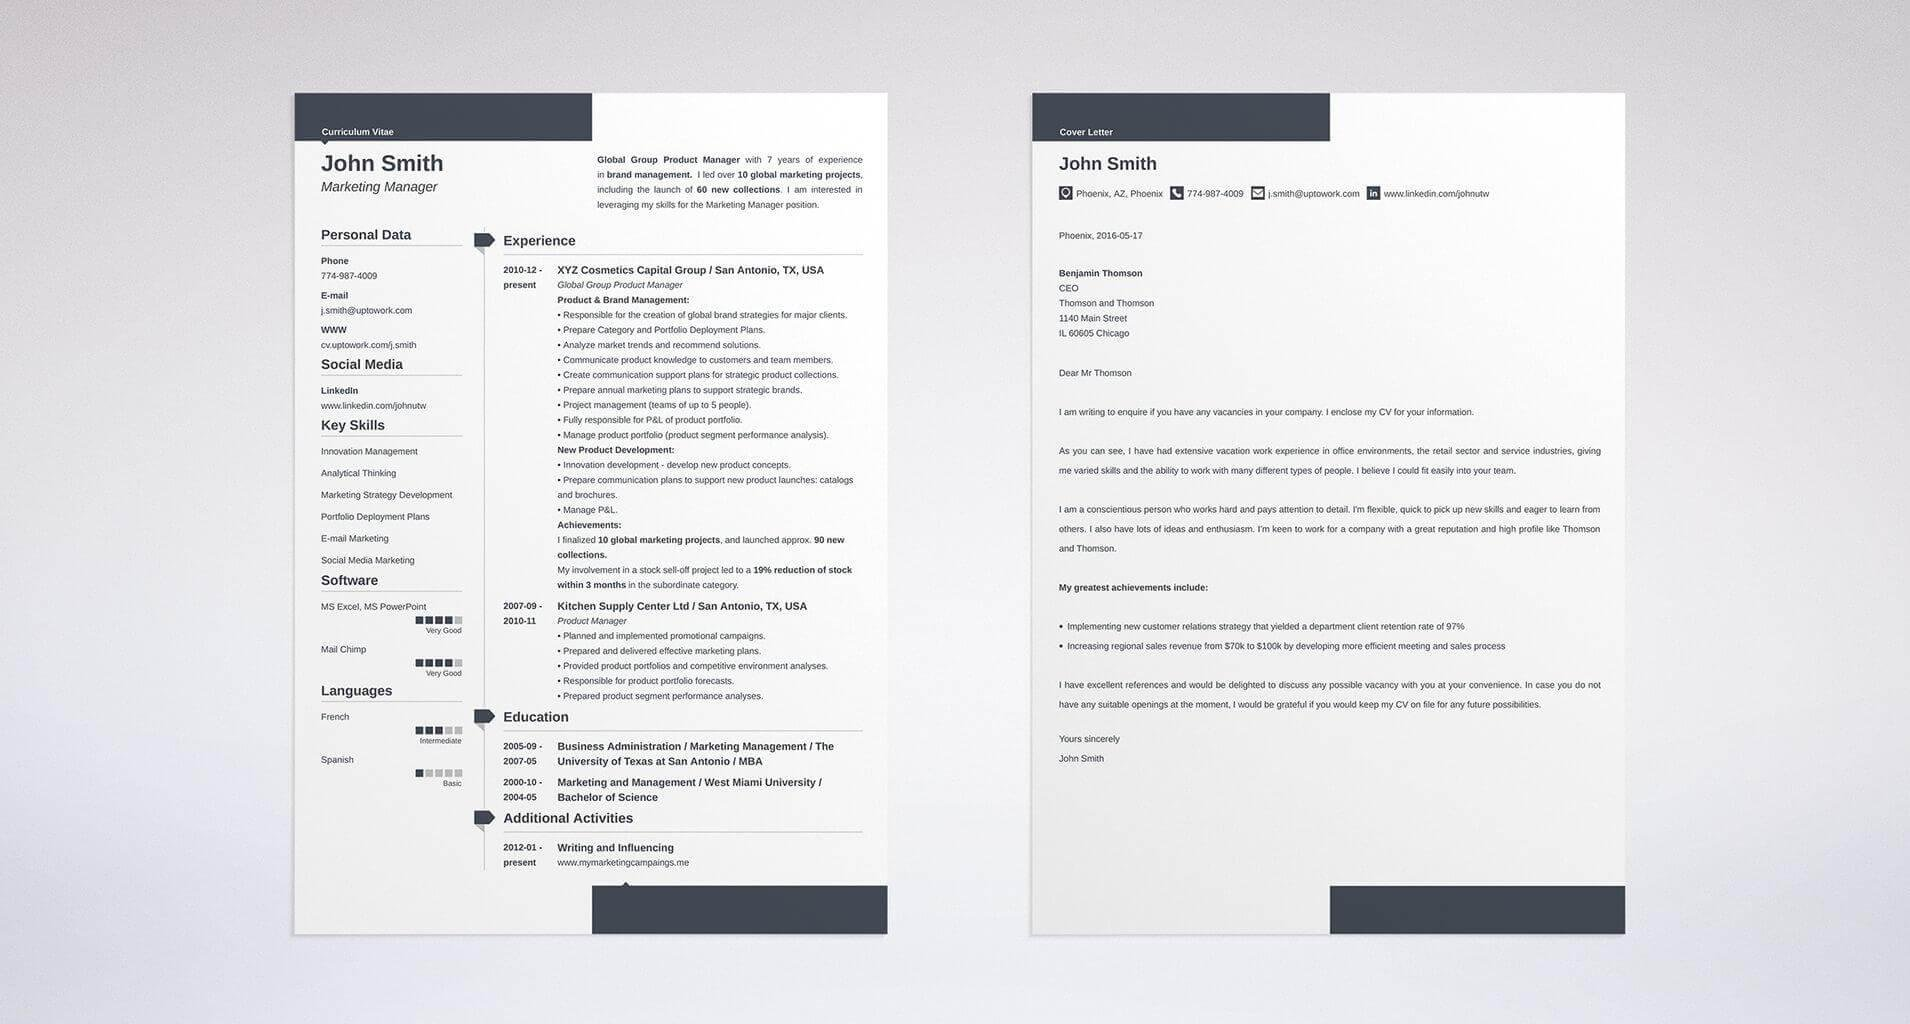 best resume tips tricks writing advice samples for creating the possible cover letter Resume Tips For Creating The Best Possible Resume